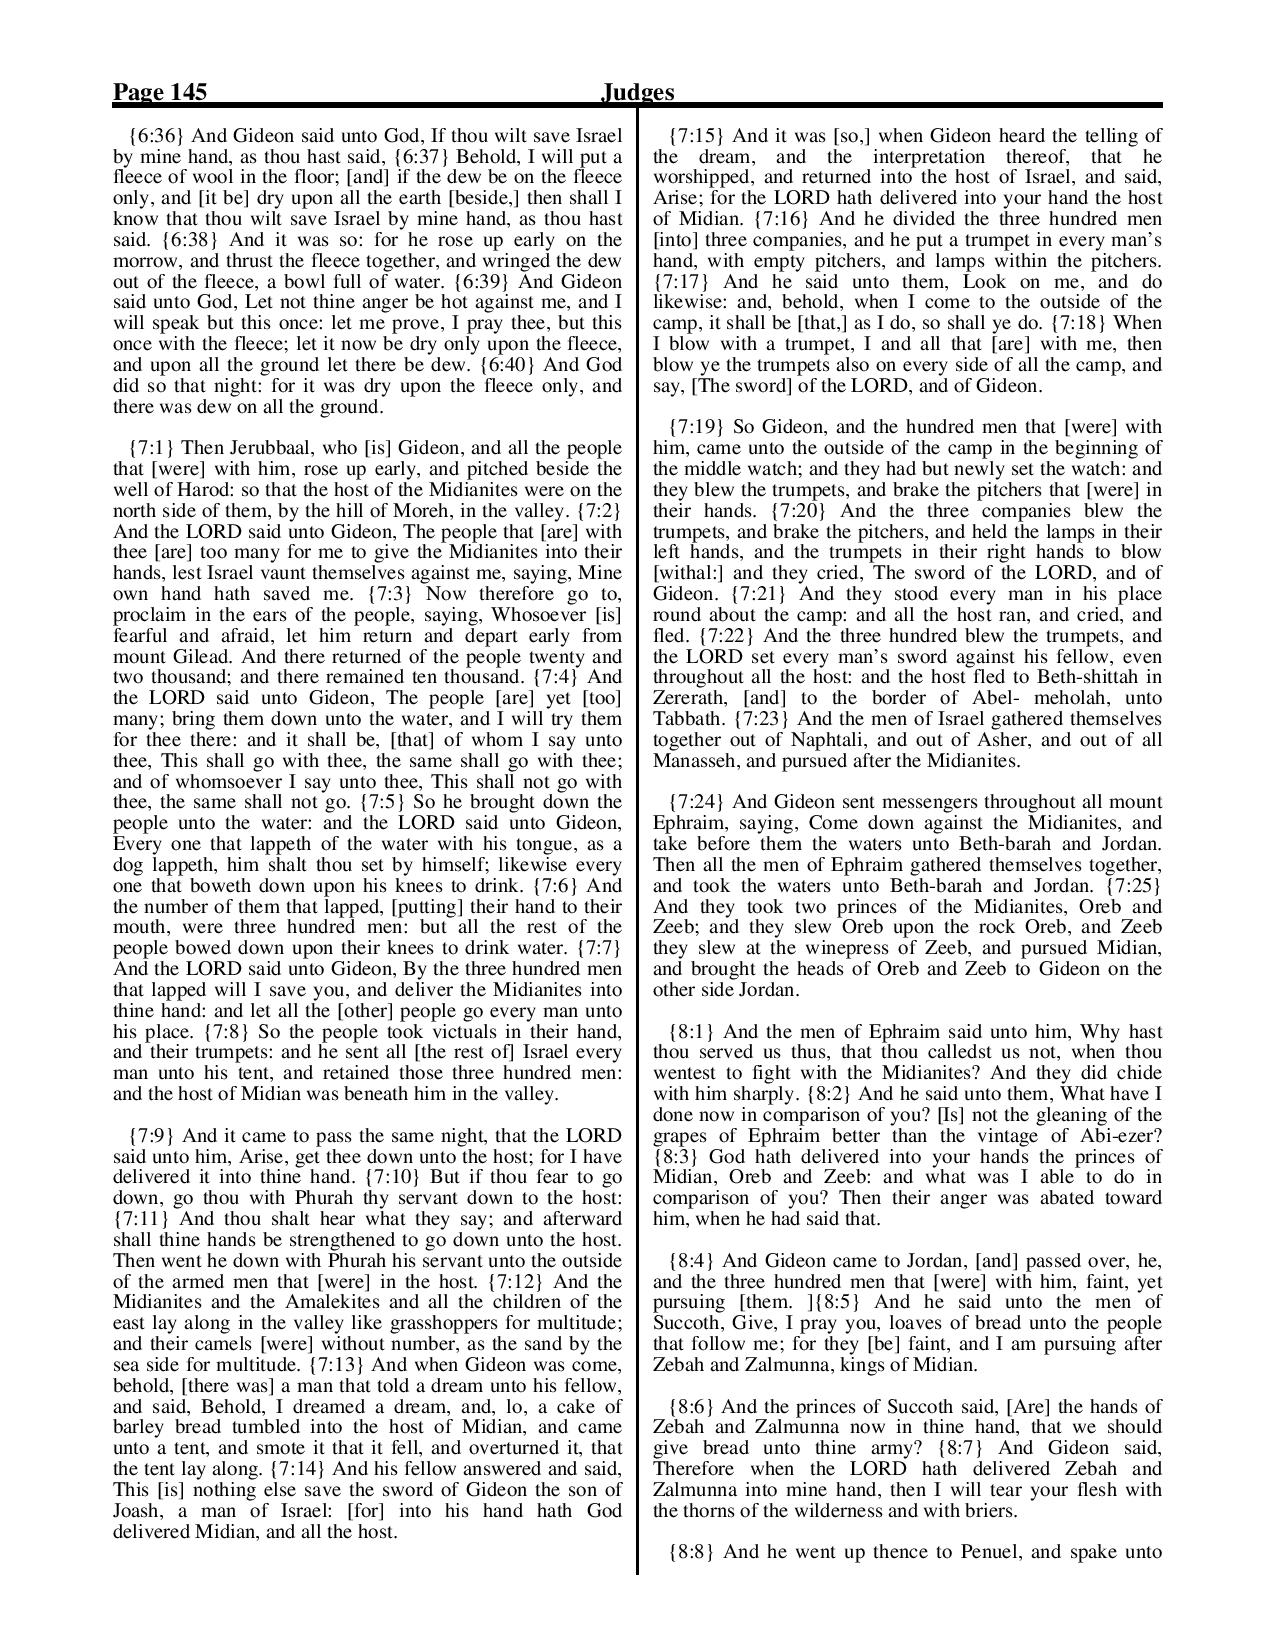 King-James-Bible-KJV-Bible-PDF-page-166